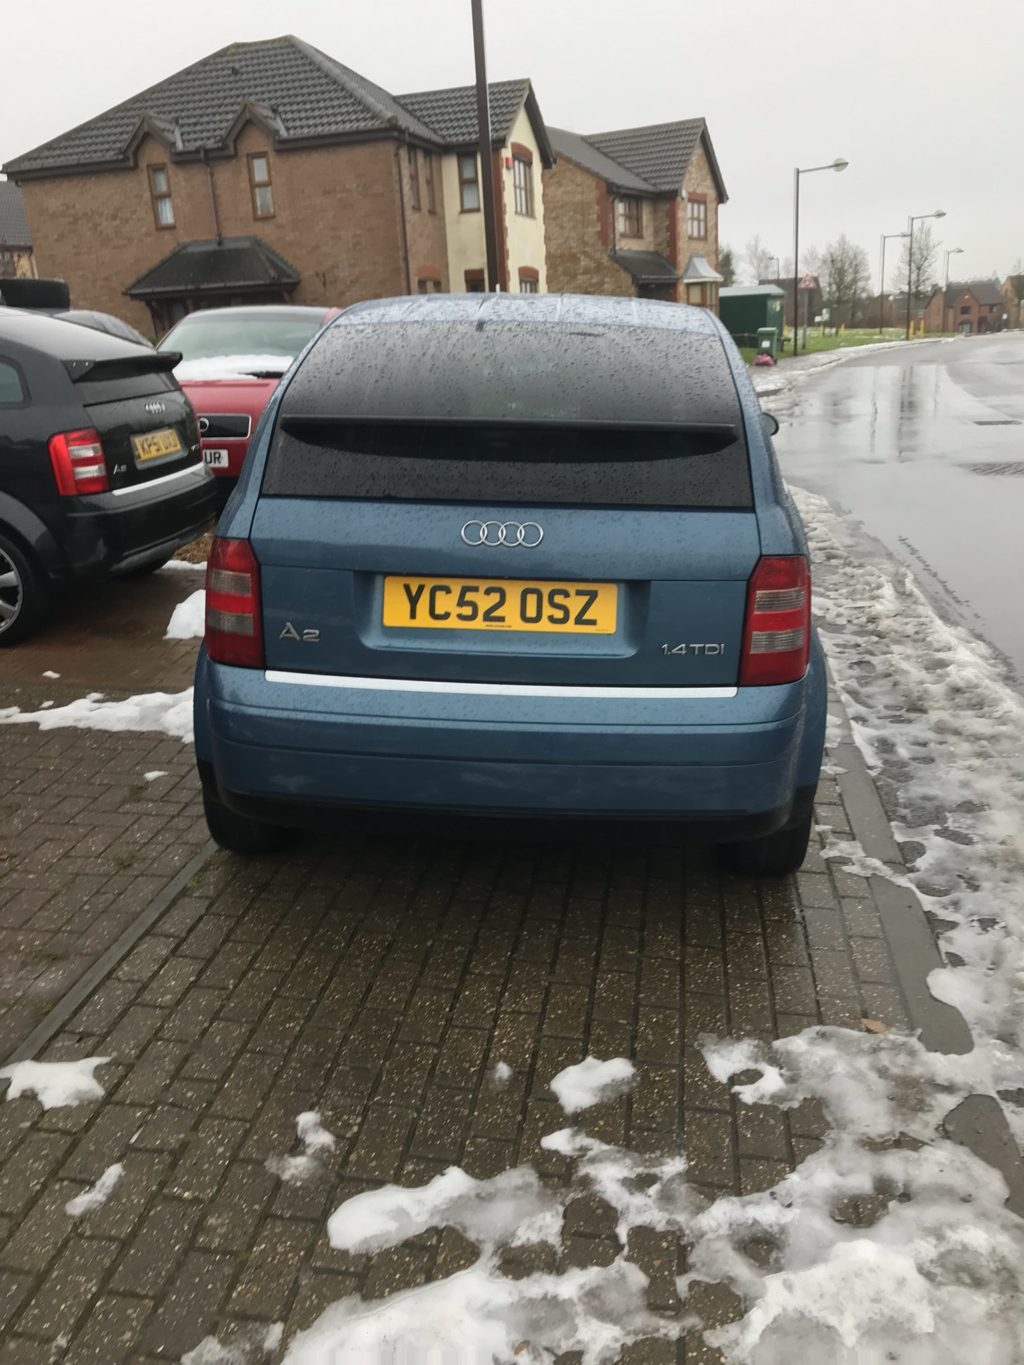 YC54 OSZ displaying Inconsiderate Parking